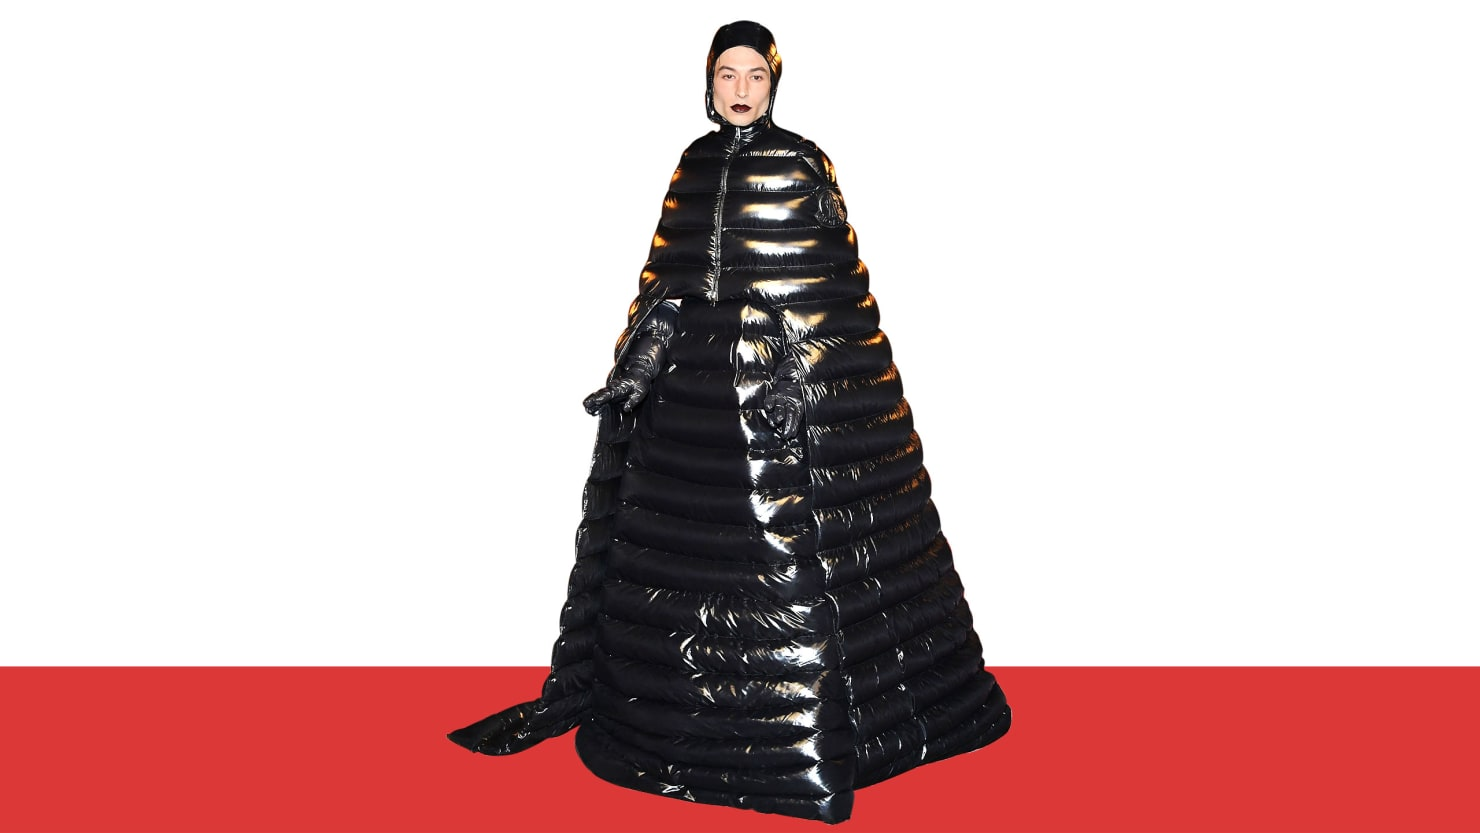 Half Jacket 2 0 >> Ezra Miller's Puffer Coat Dress Shows How Exciting Gender-Neutral Clothing Can Be